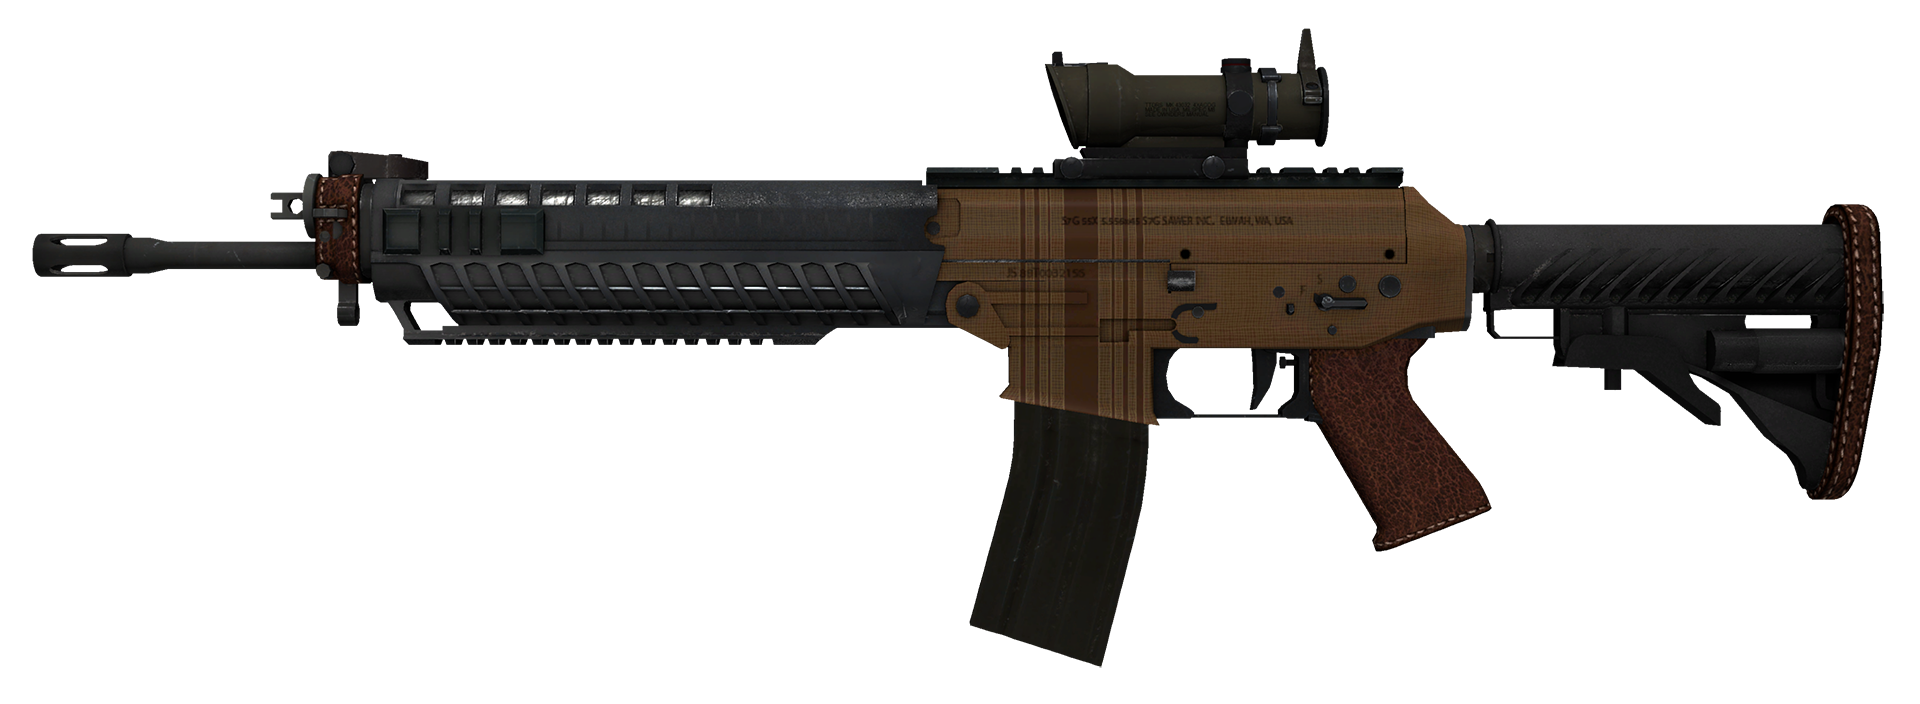 SG 553 Traveler Large Rendering